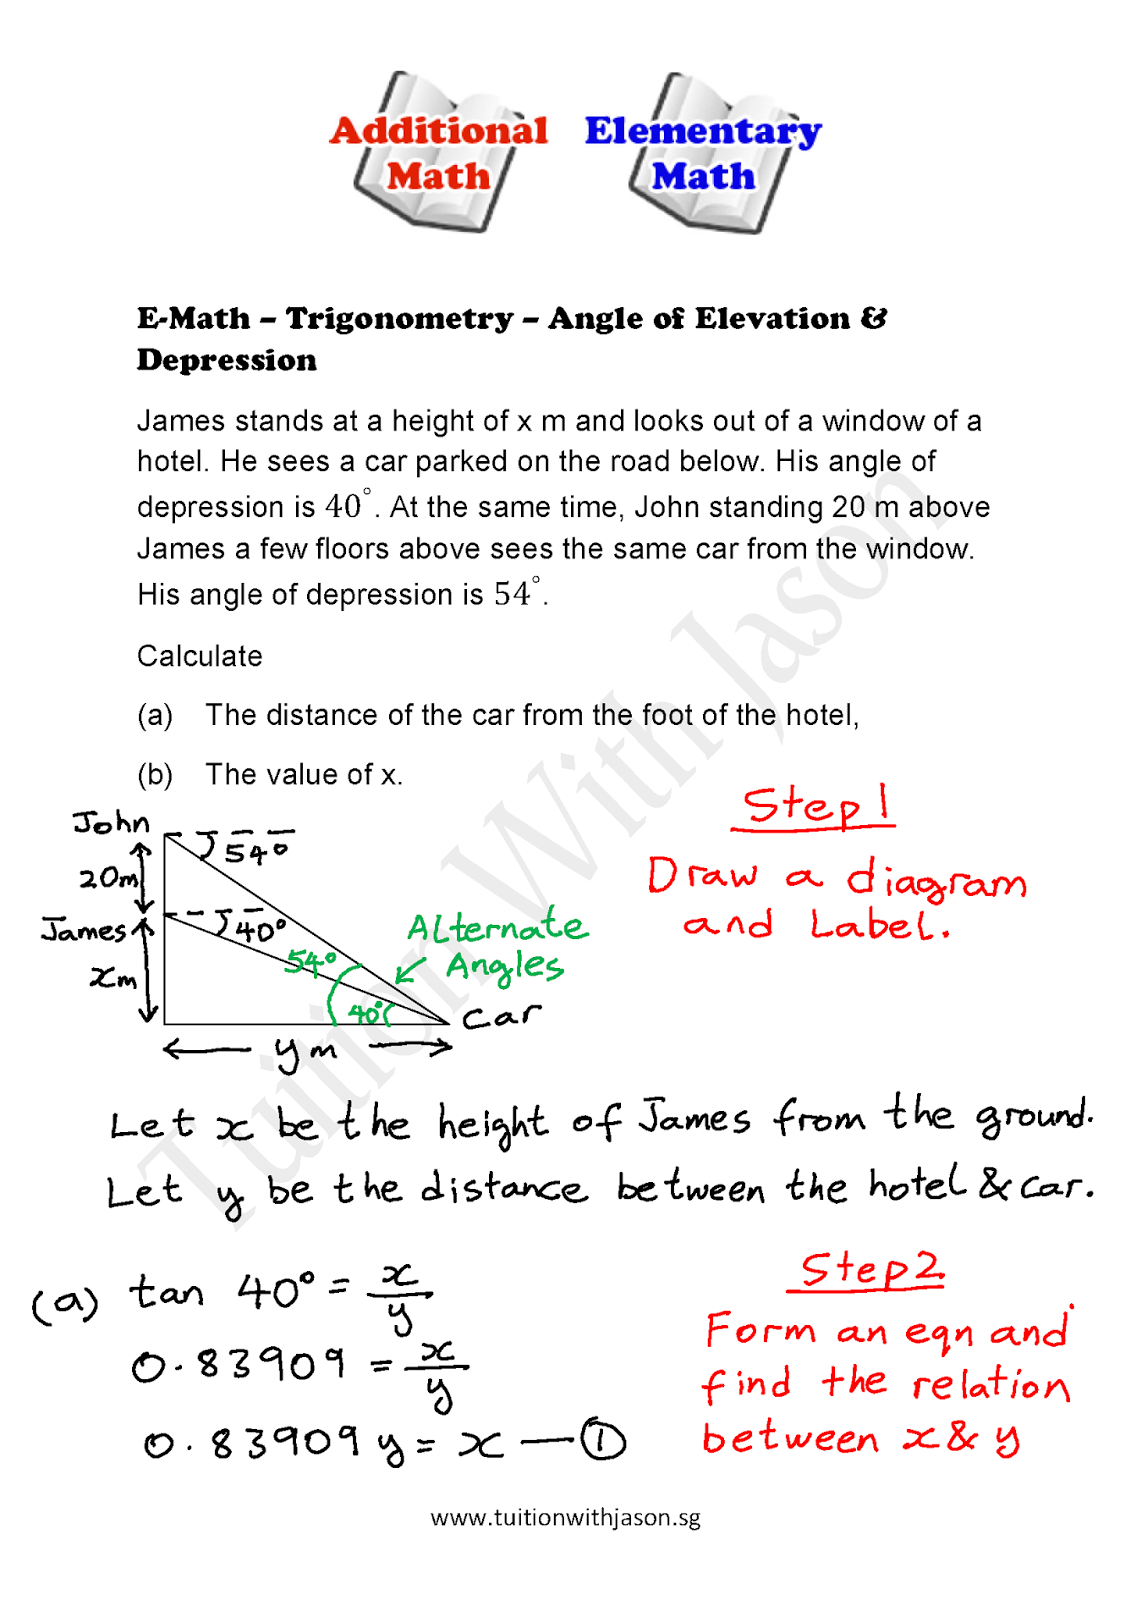 worksheet Angles Of Elevation And Depression Worksheet Answers e math trigonometry angle of elevation depression 2 2